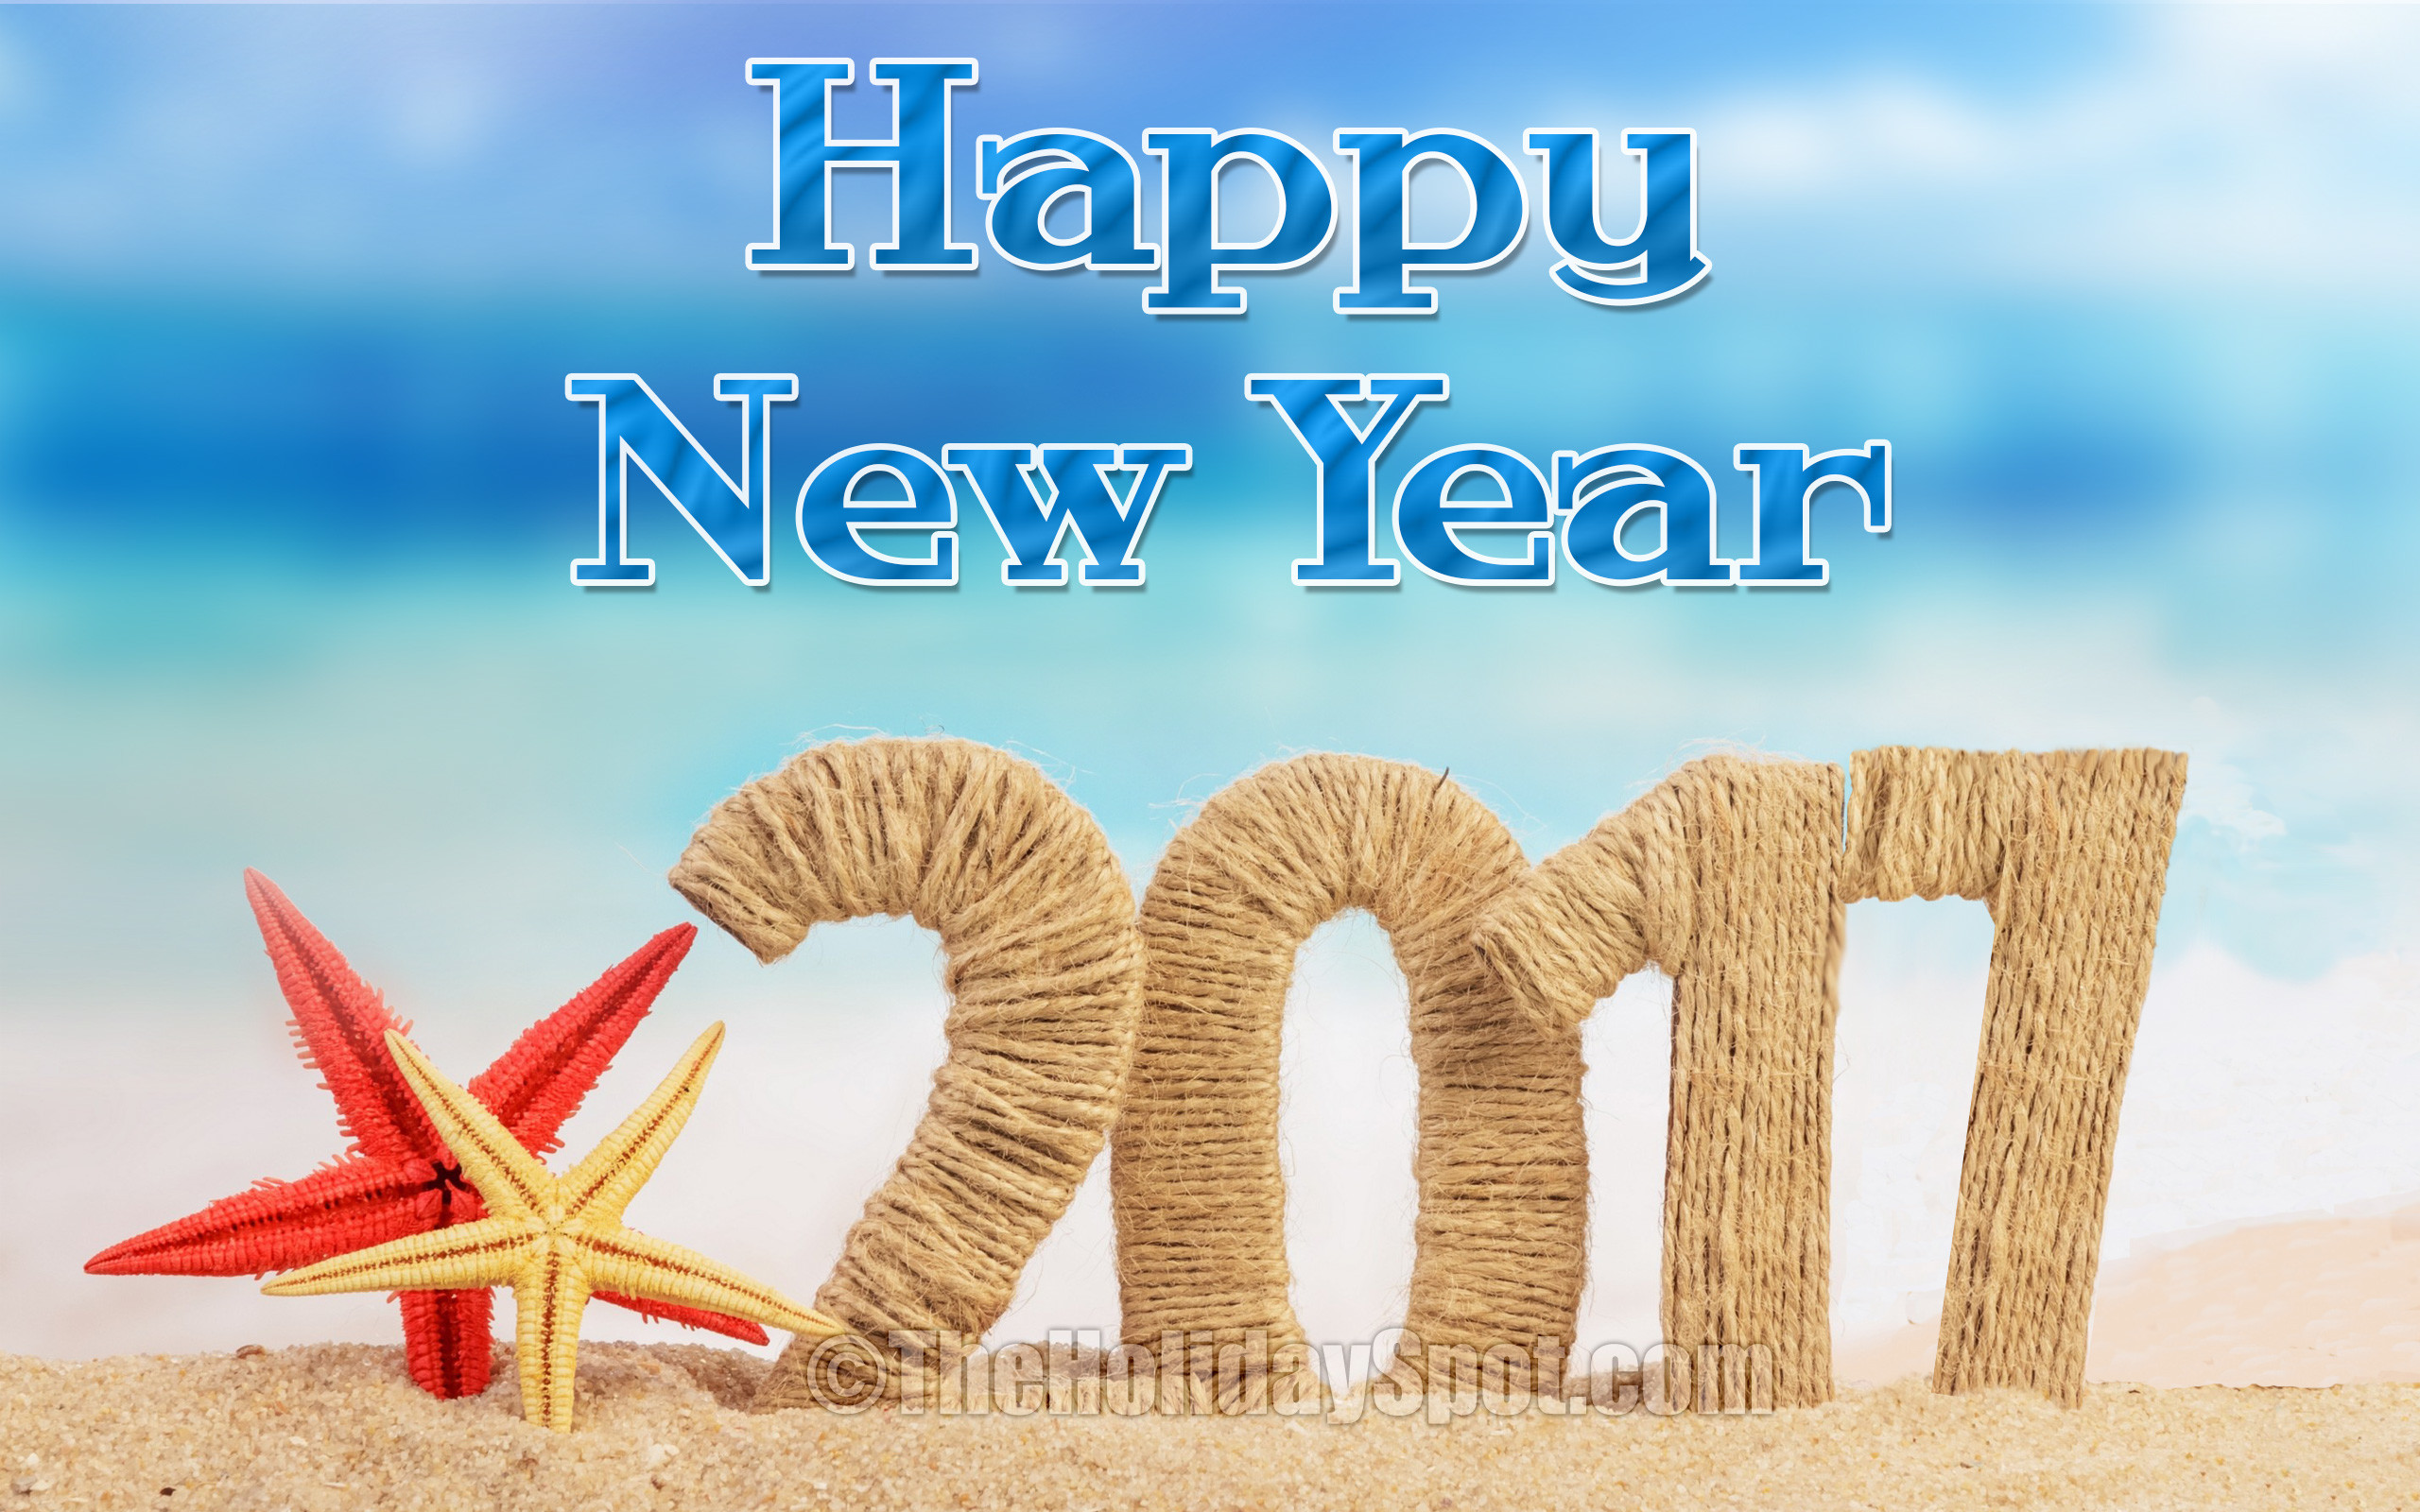 New Year Wallpaper – Happy New Year with rope